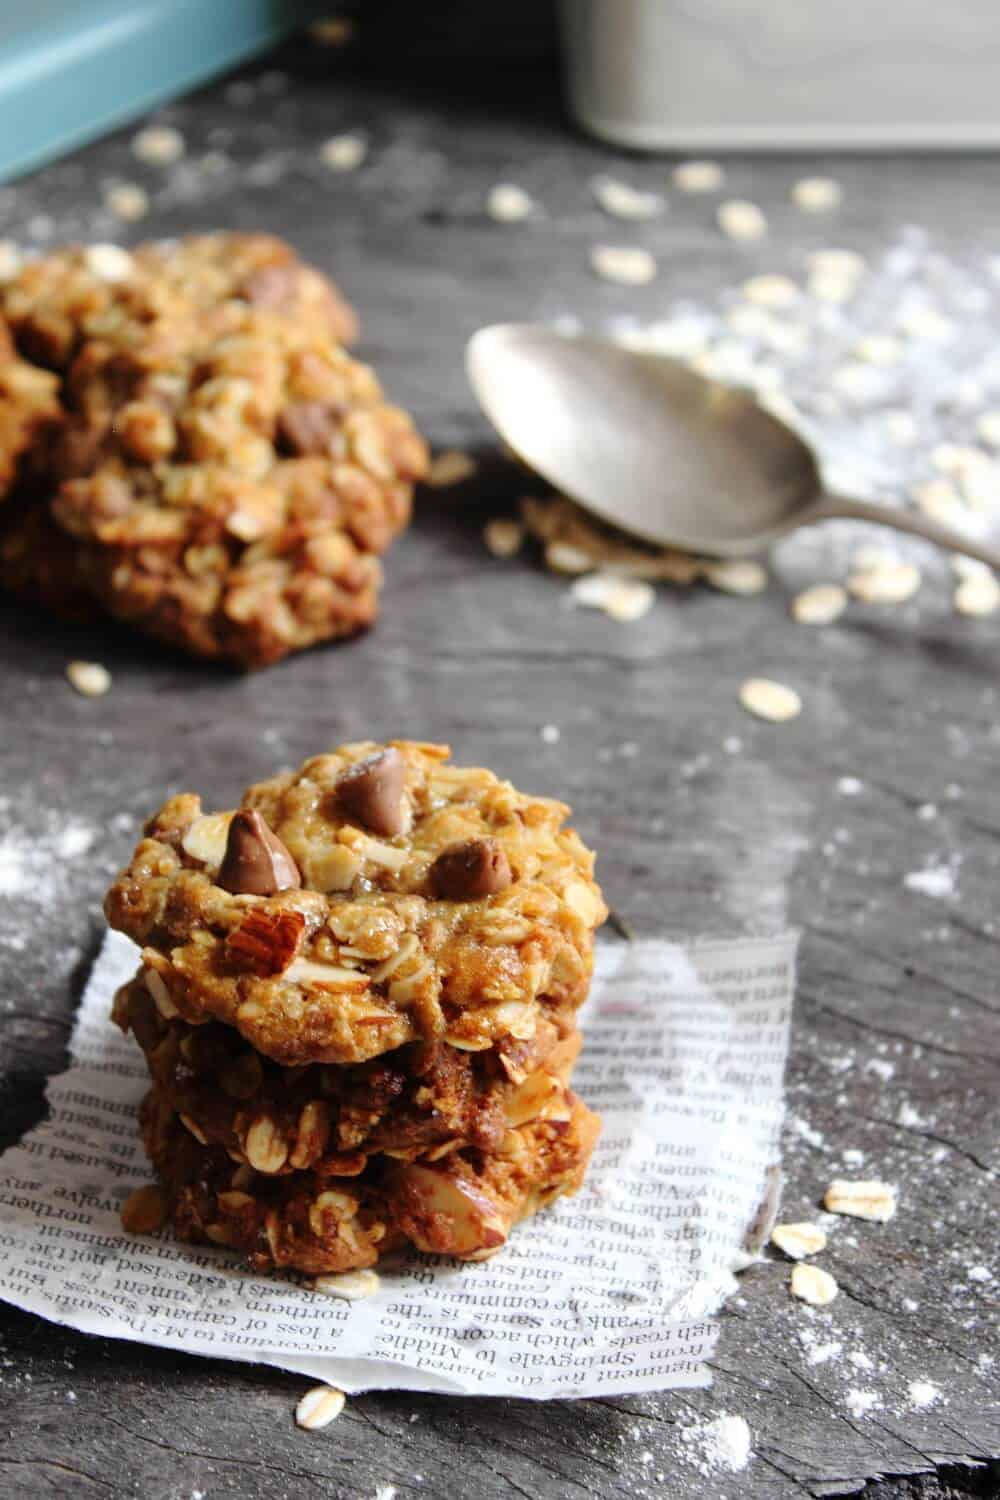 These Almond & Choc Chip ANZAC Biscuits are the perfect combination of crunchy on the outside and chewy on the inside. YUM!